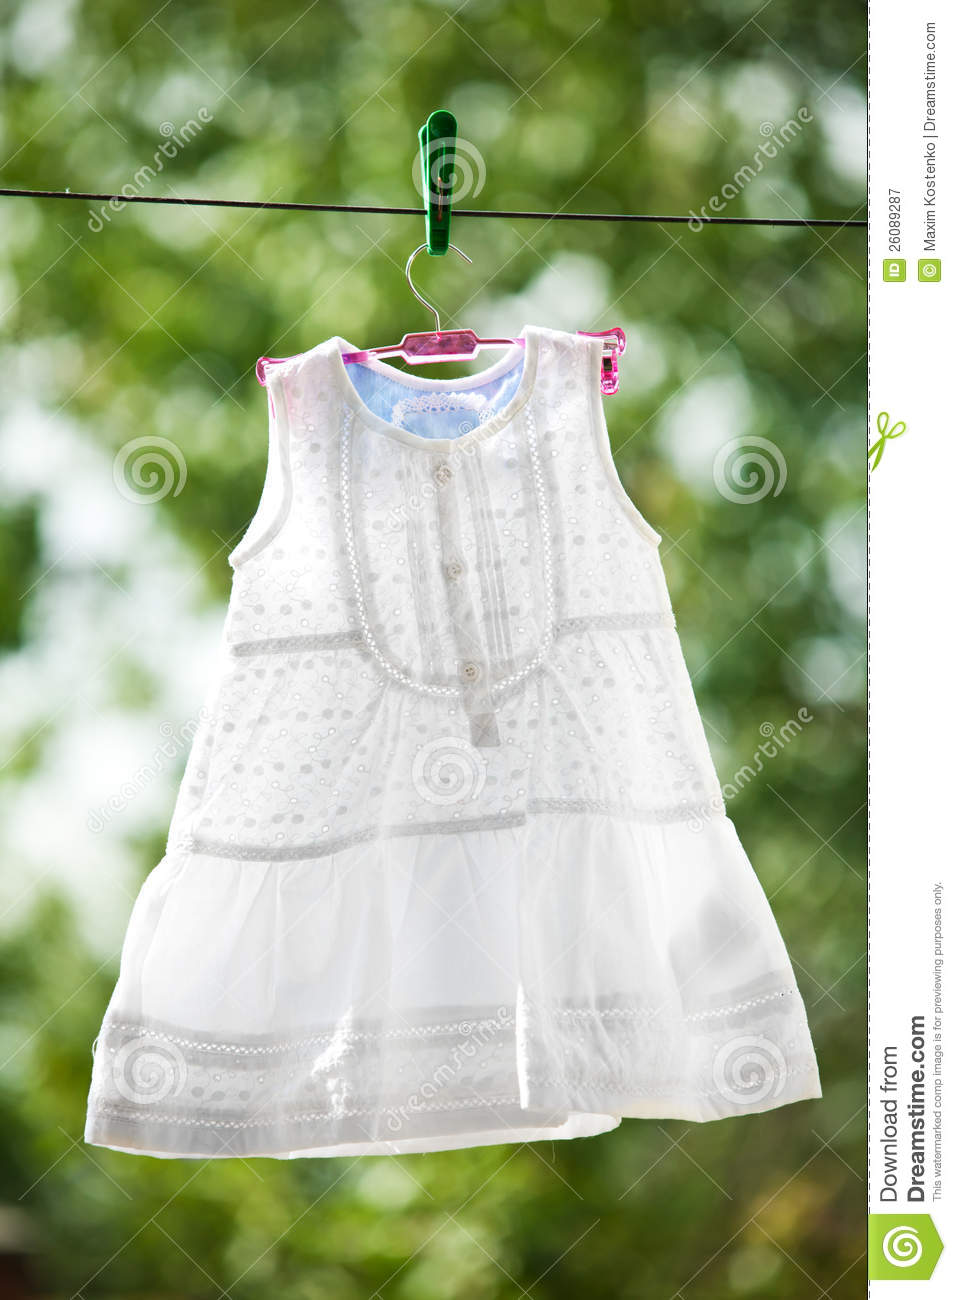 White Baby Dress Outdoor Royalty Free Stock Photography - Image ...